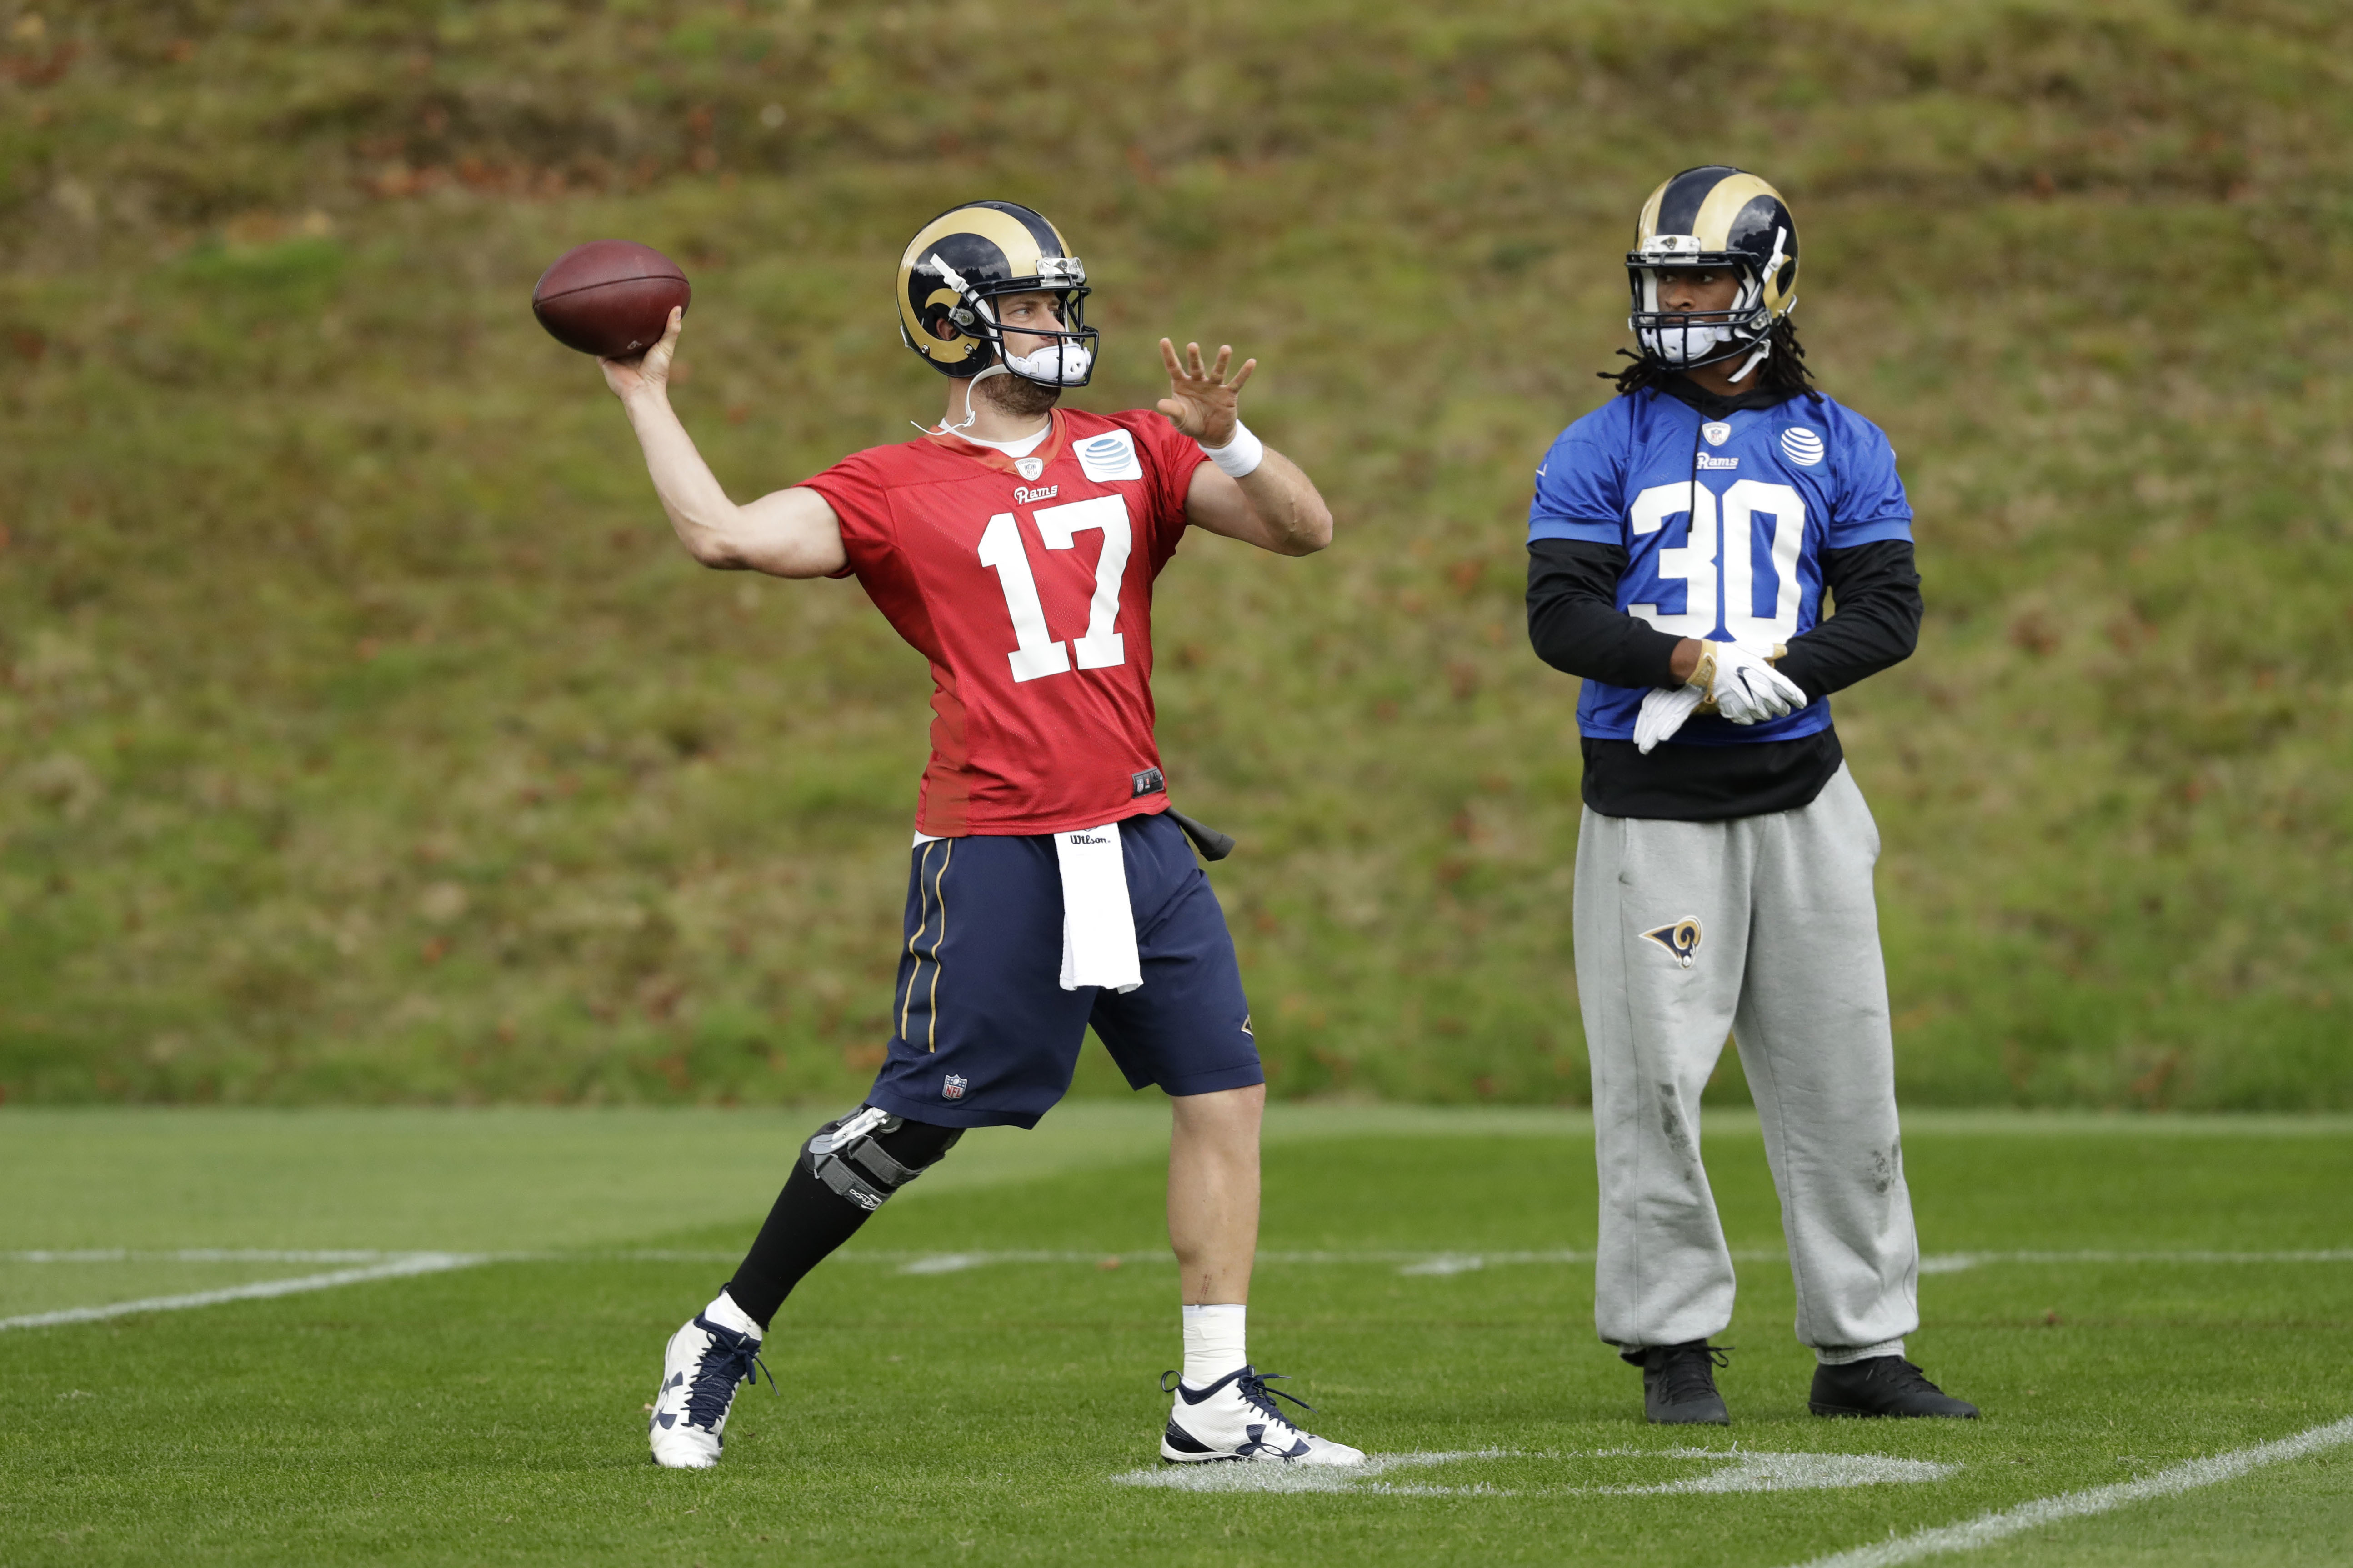 Los Angeles Rams quarterback Case Keenum, left, and running back Todd Gurley take park in a practice session at Pennyhill Park Hotel in Bagshot, England, Thursday, Oct. 20, 2016. The Los Angeles Rams are due to play the New York Jets at Twickenham stadium